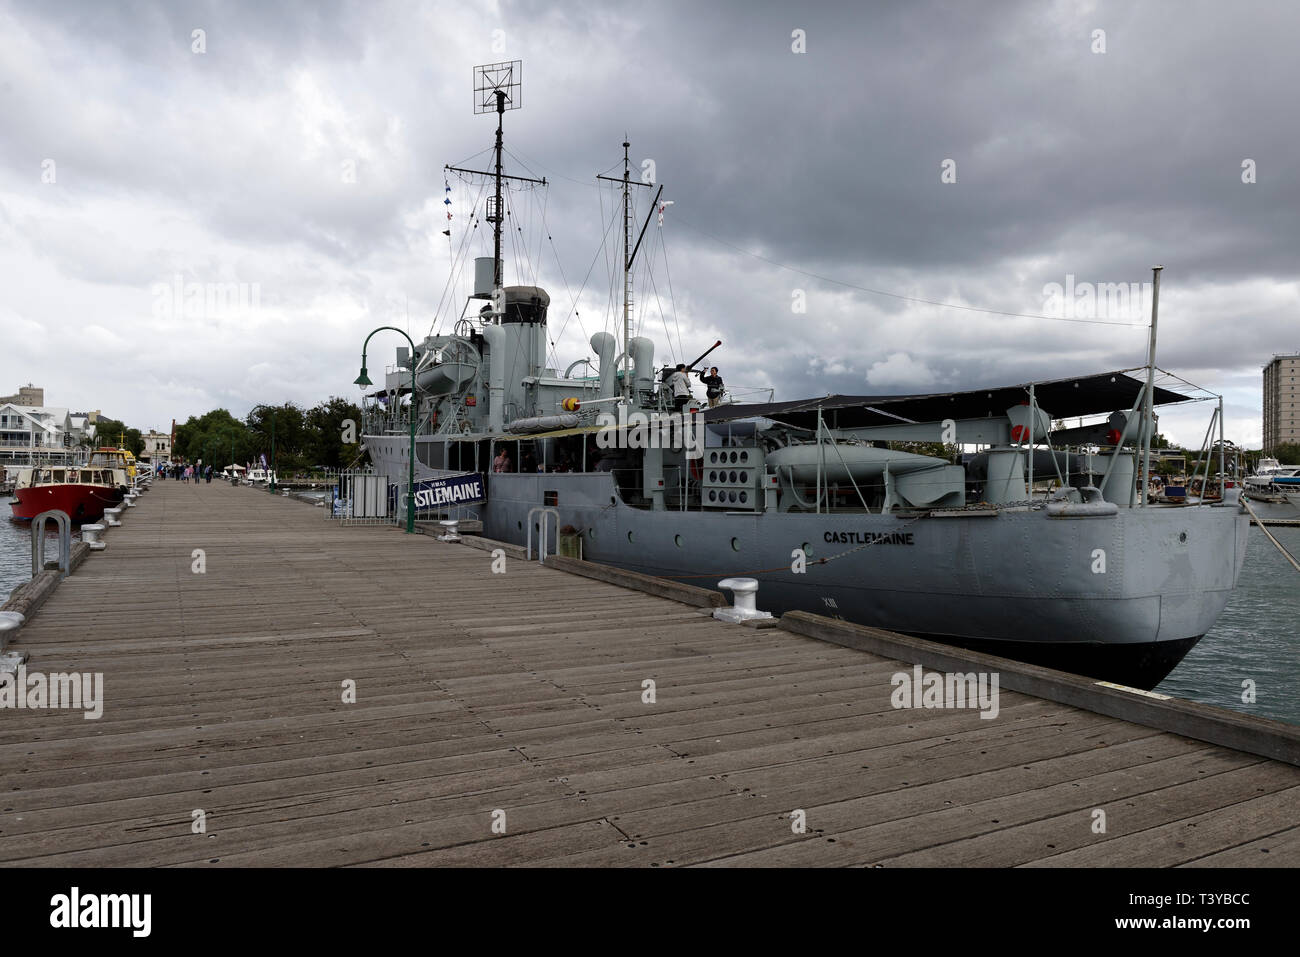 The HMAS Castlemaine, now a museum ship, permanently docked at the HM Naval Dockyard at Williamstown, Melbourne, Victoria, Australia. Launched in 1941 - Stock Image